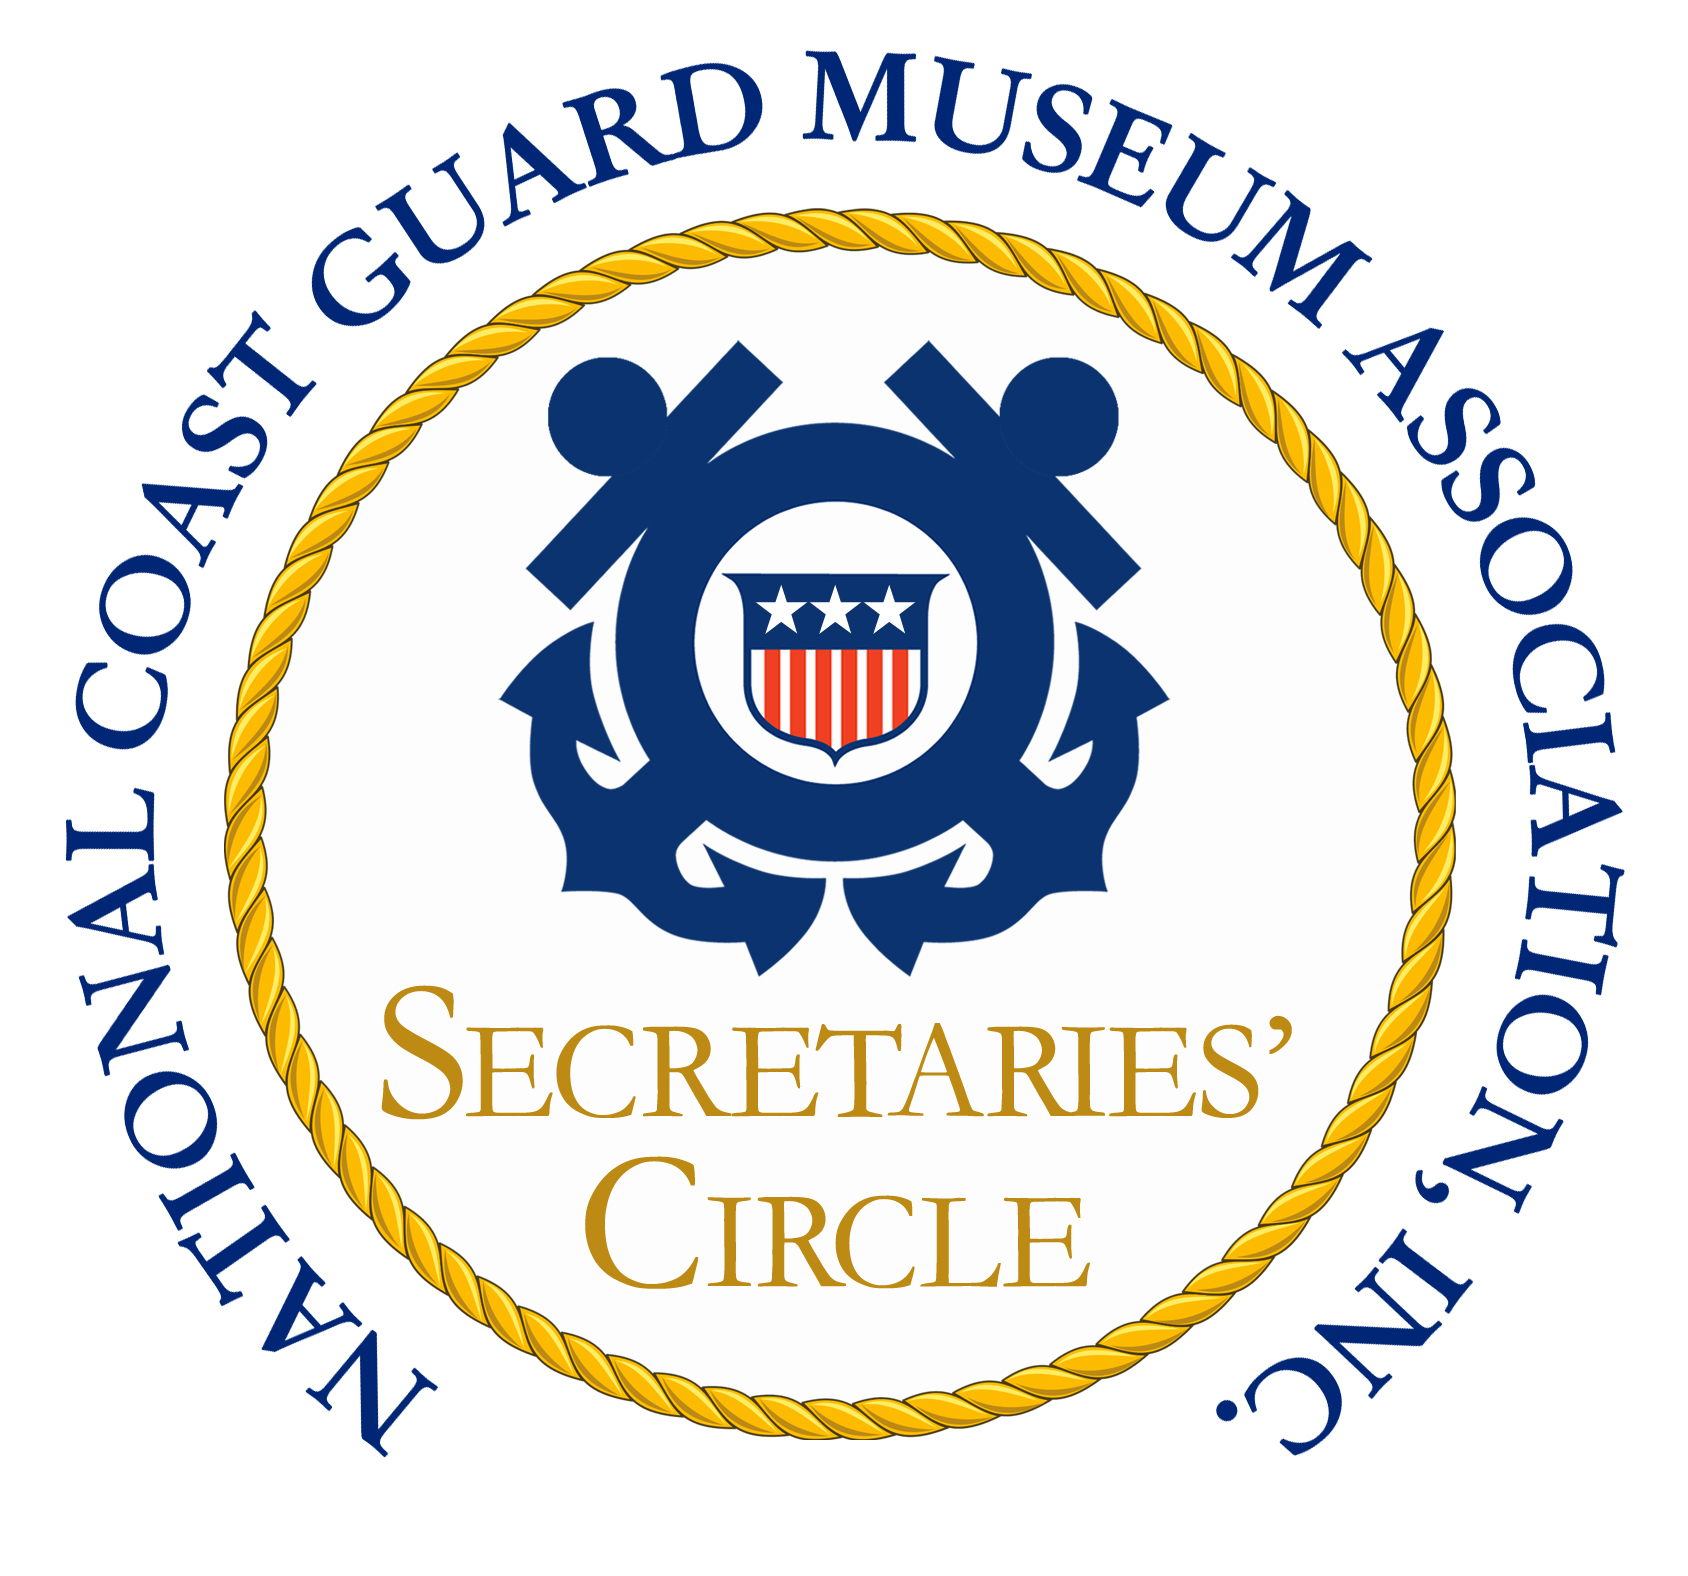 Secretaries Circle Logo Updated.jpg